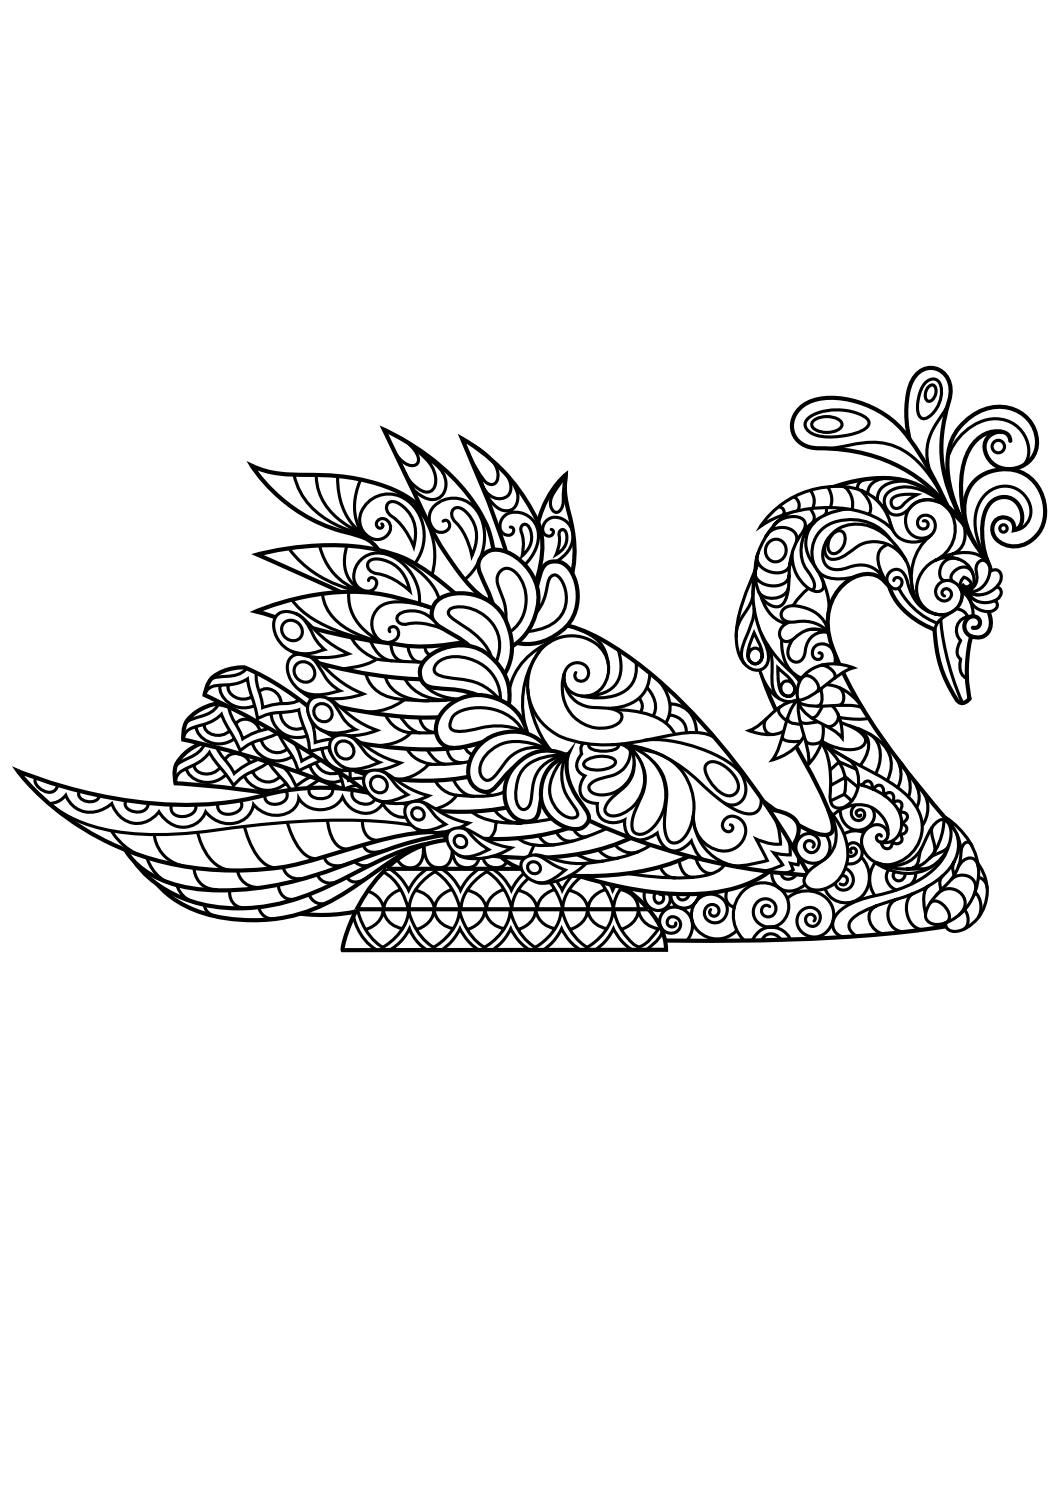 Animal coloring pages pdf | Pinterest | Adult coloring, Coloring ...